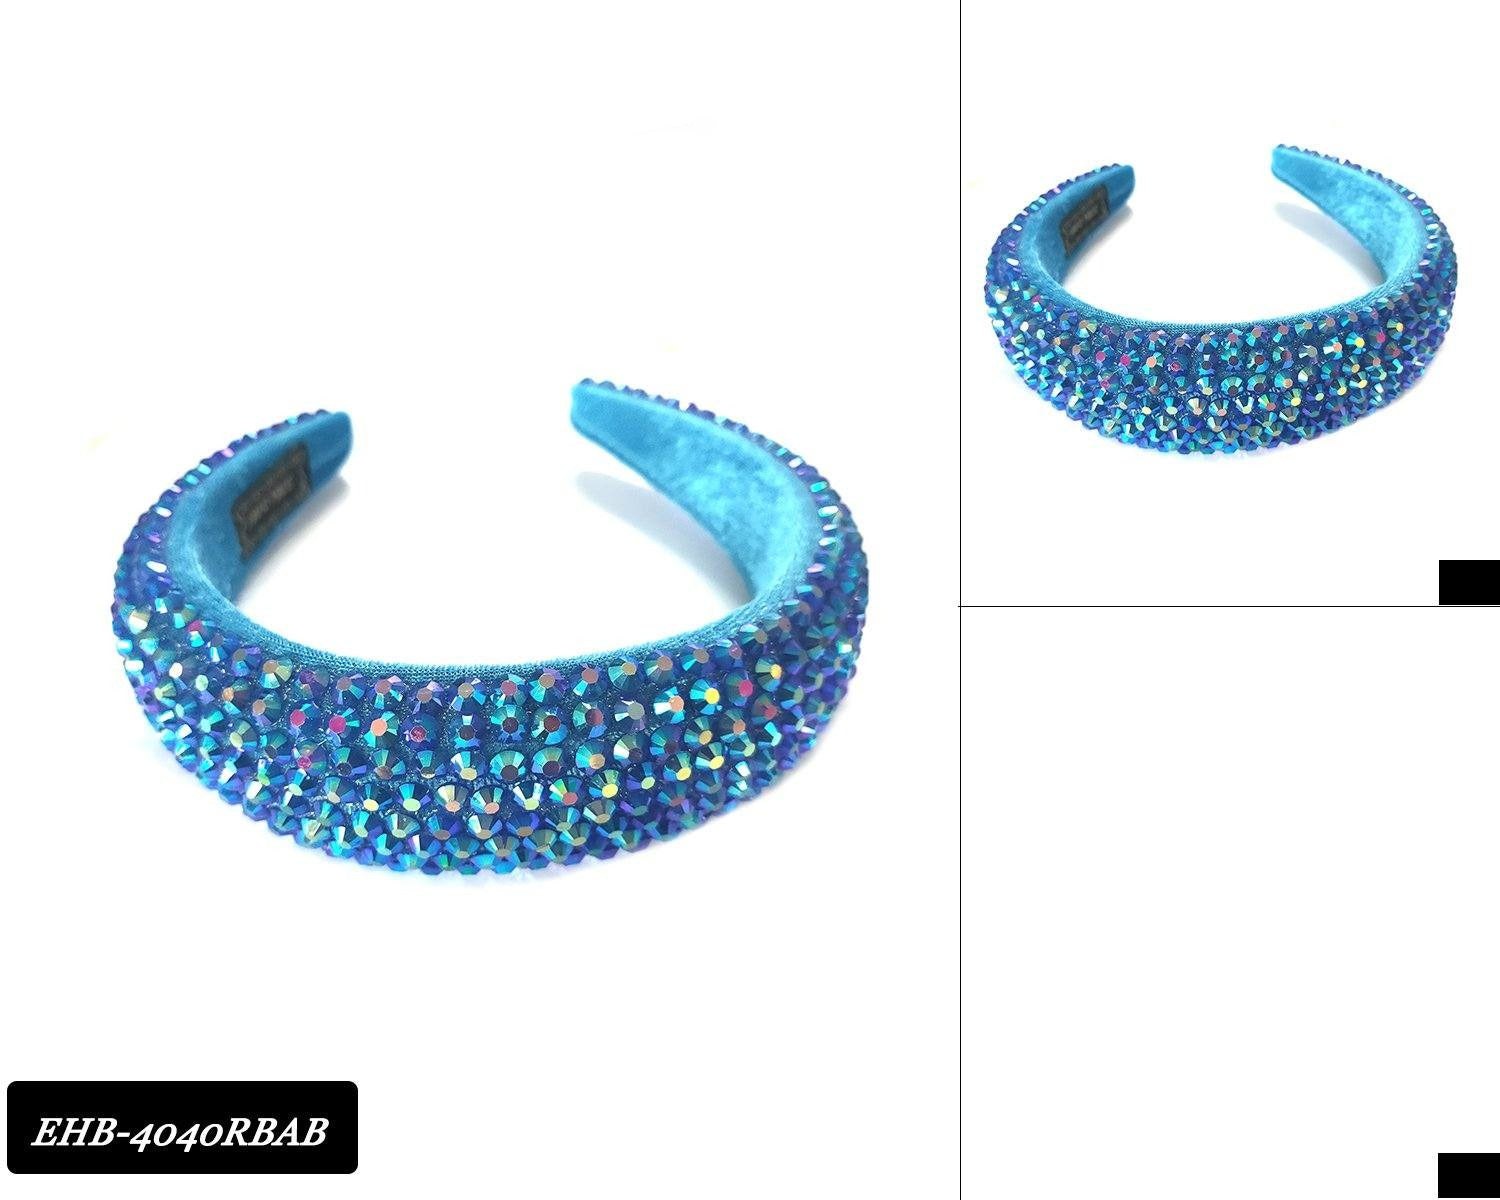 wholesale-fashion-headband-rhinestone-EHB4040RBAB